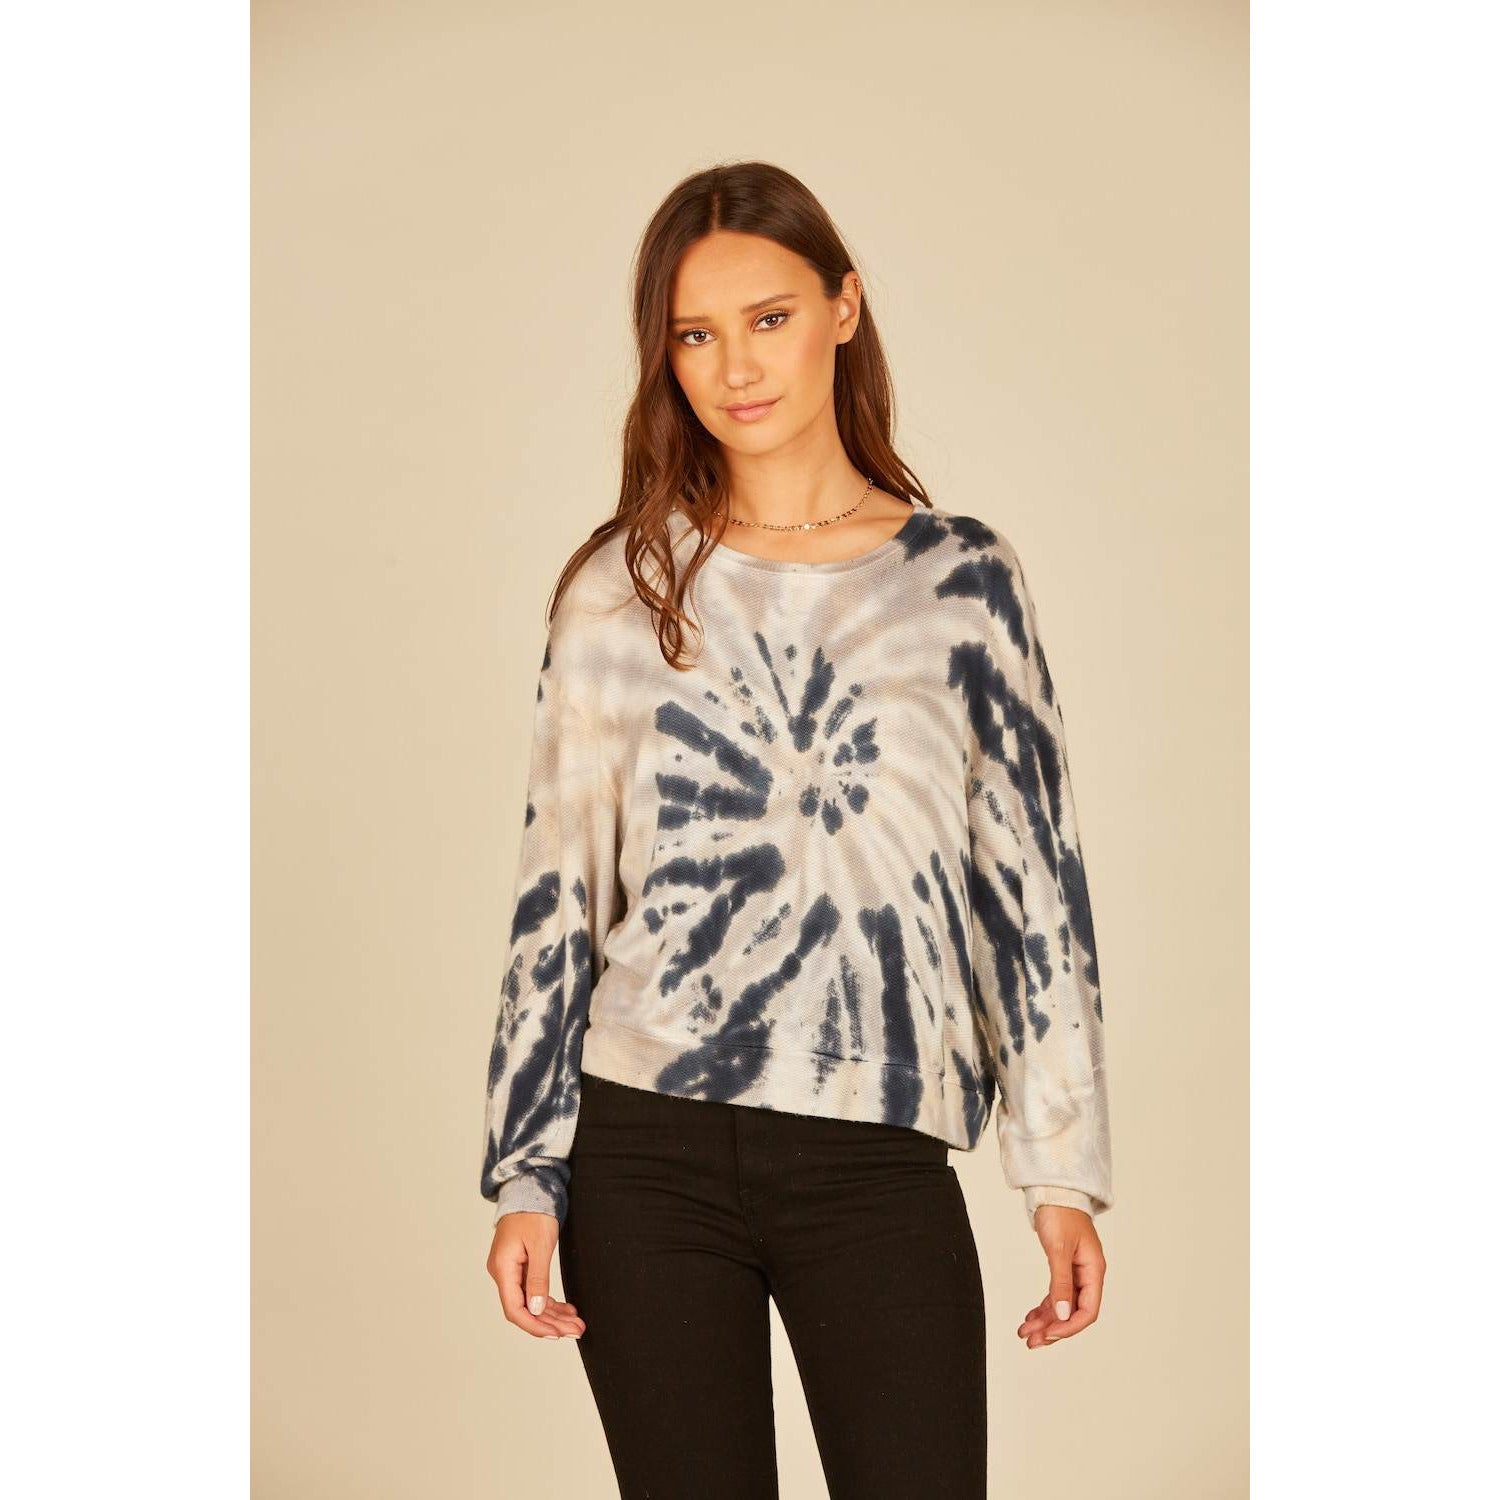 Swirl Tie Dye Long Sleeve Top